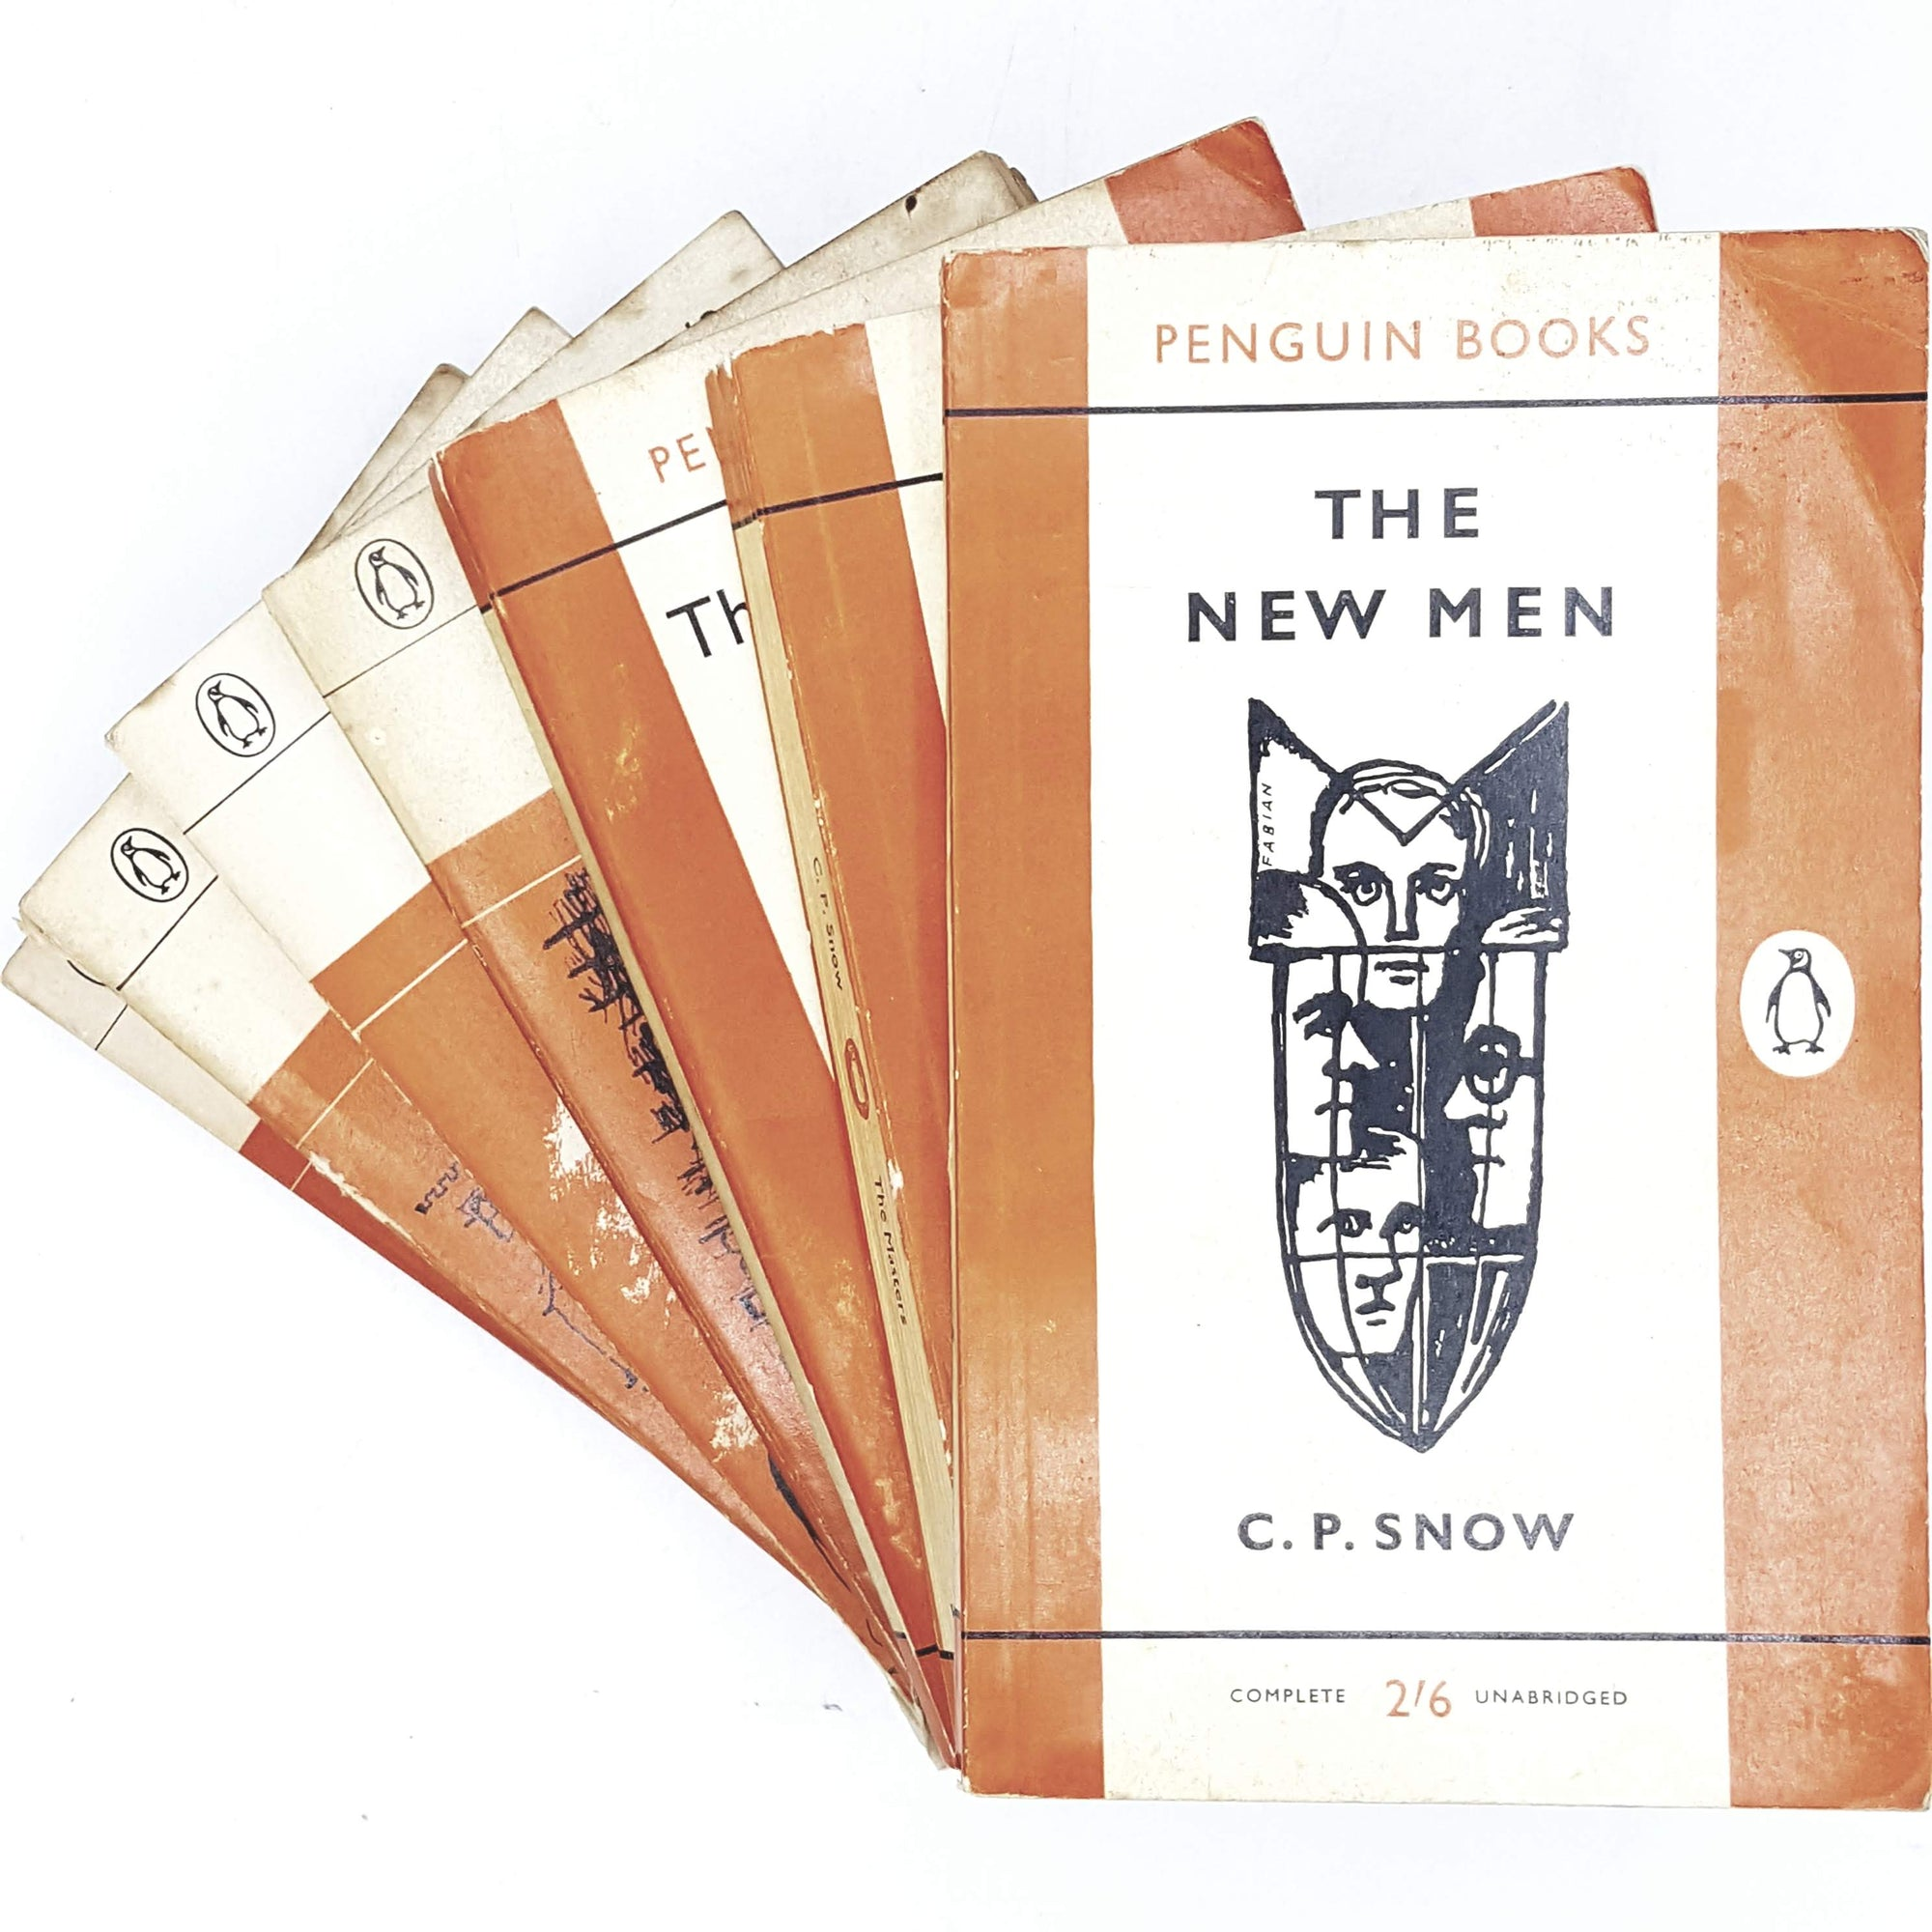 Vintage Penguin Collection of C. P. Snow 1960 - 1965